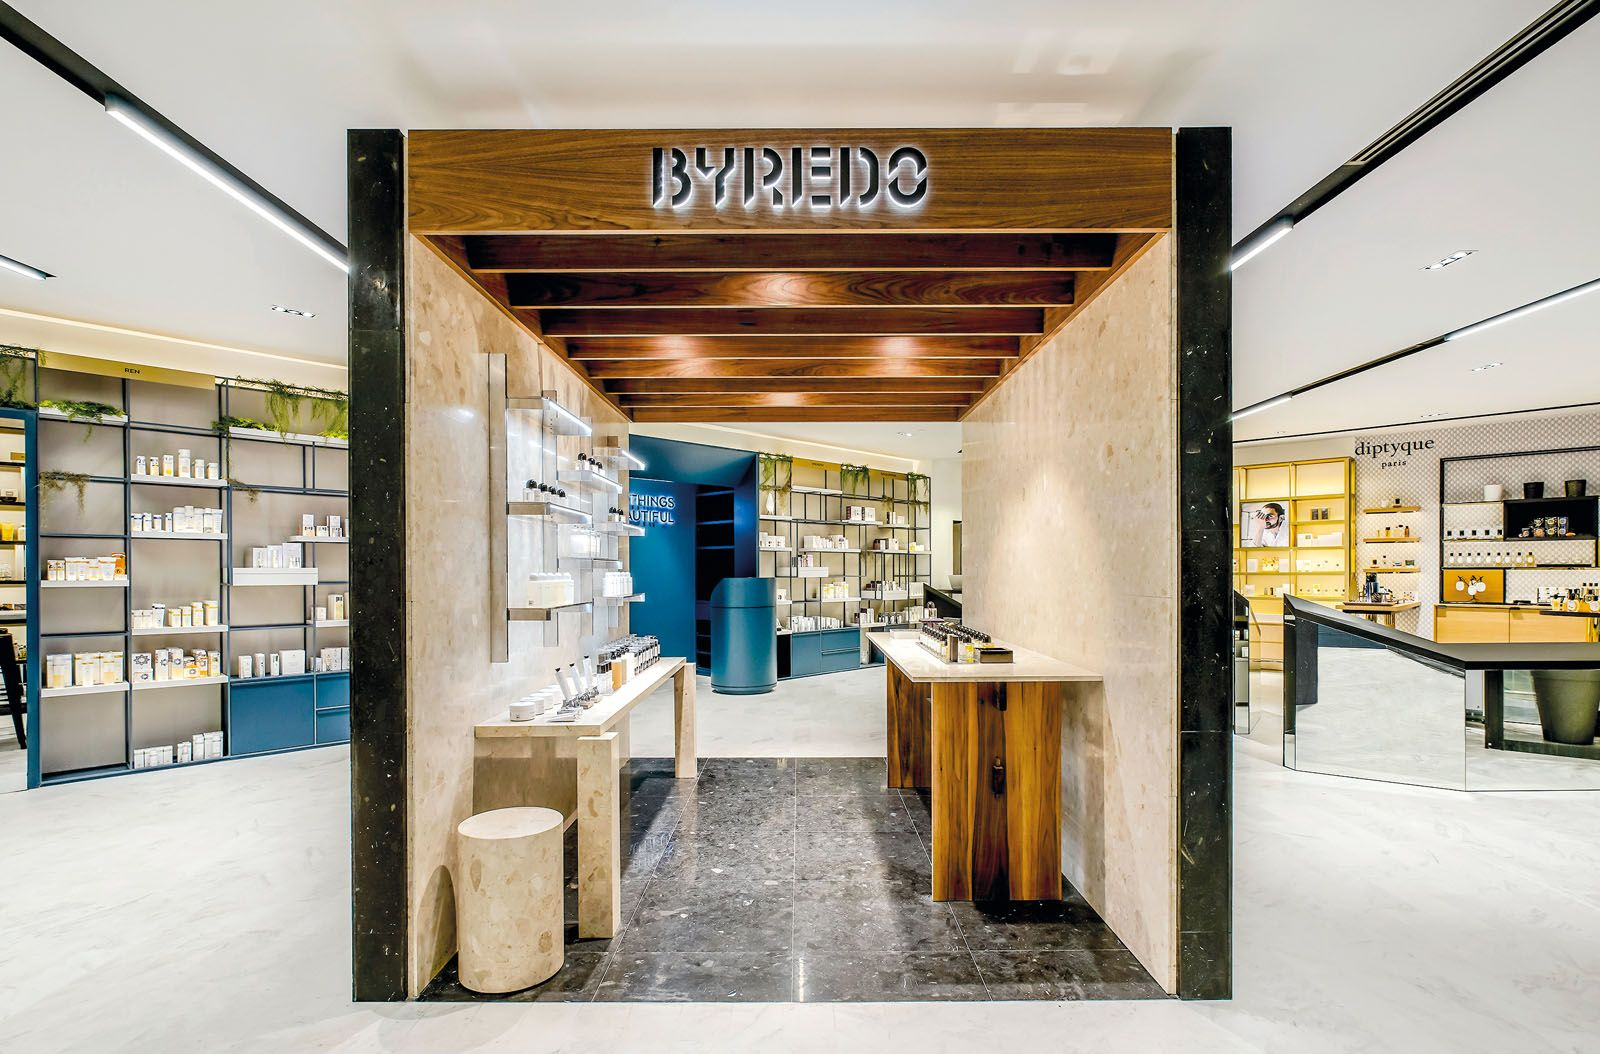 Luxasia's Escentials is known for selling niche beauty brands such as Byredo, and its e-commerce site mirrors the aesthetic of its retail stores